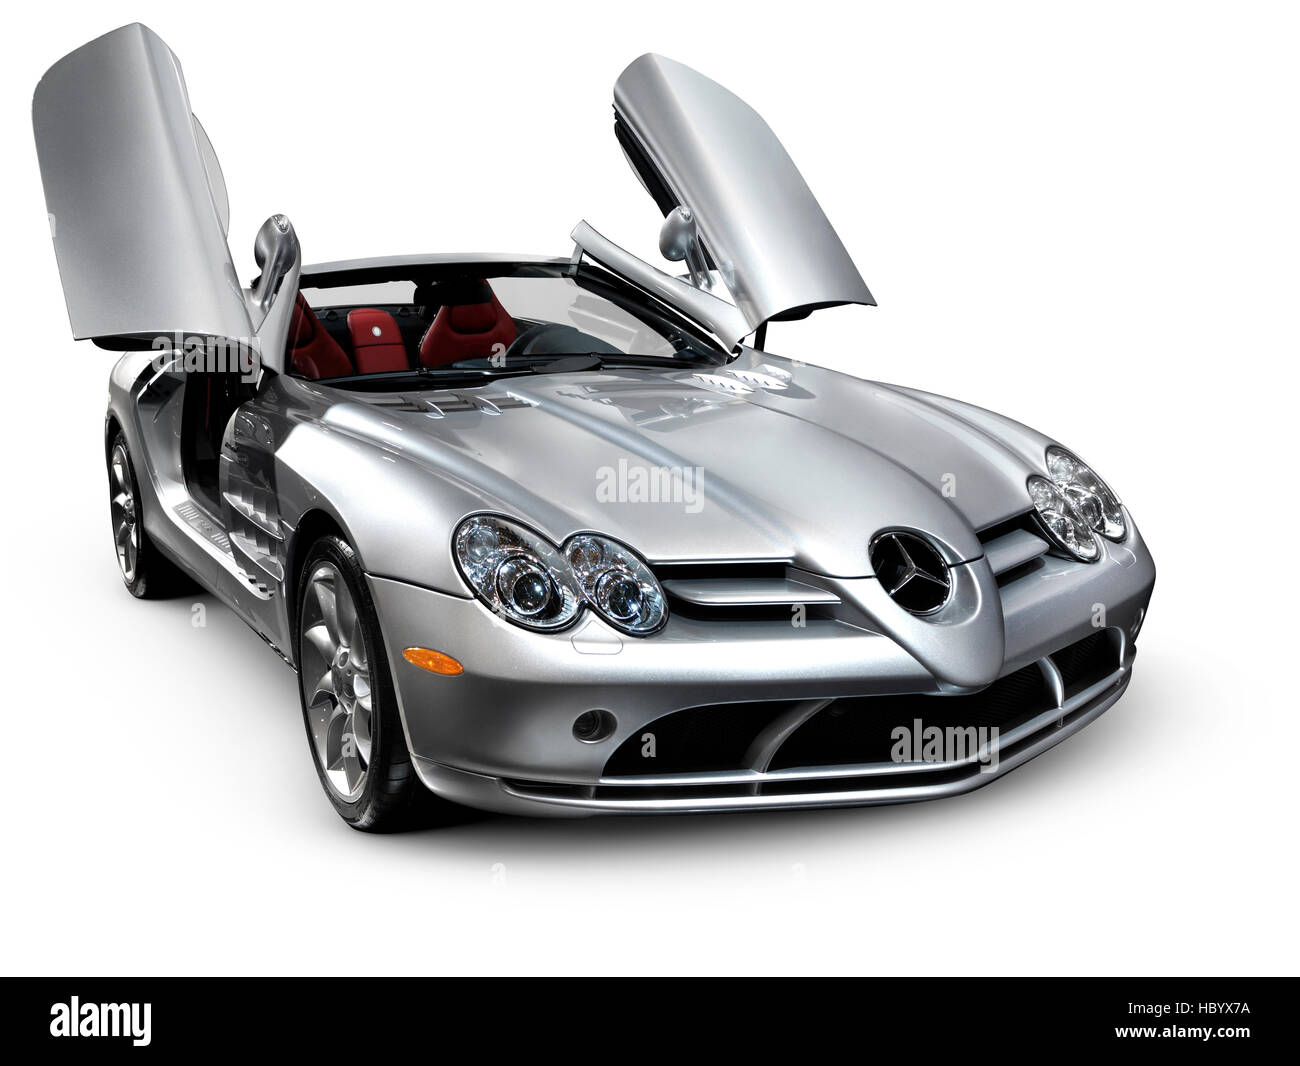 Mercedes Benz SLR McLaren Roadster Anglo-German sports car - Stock Image